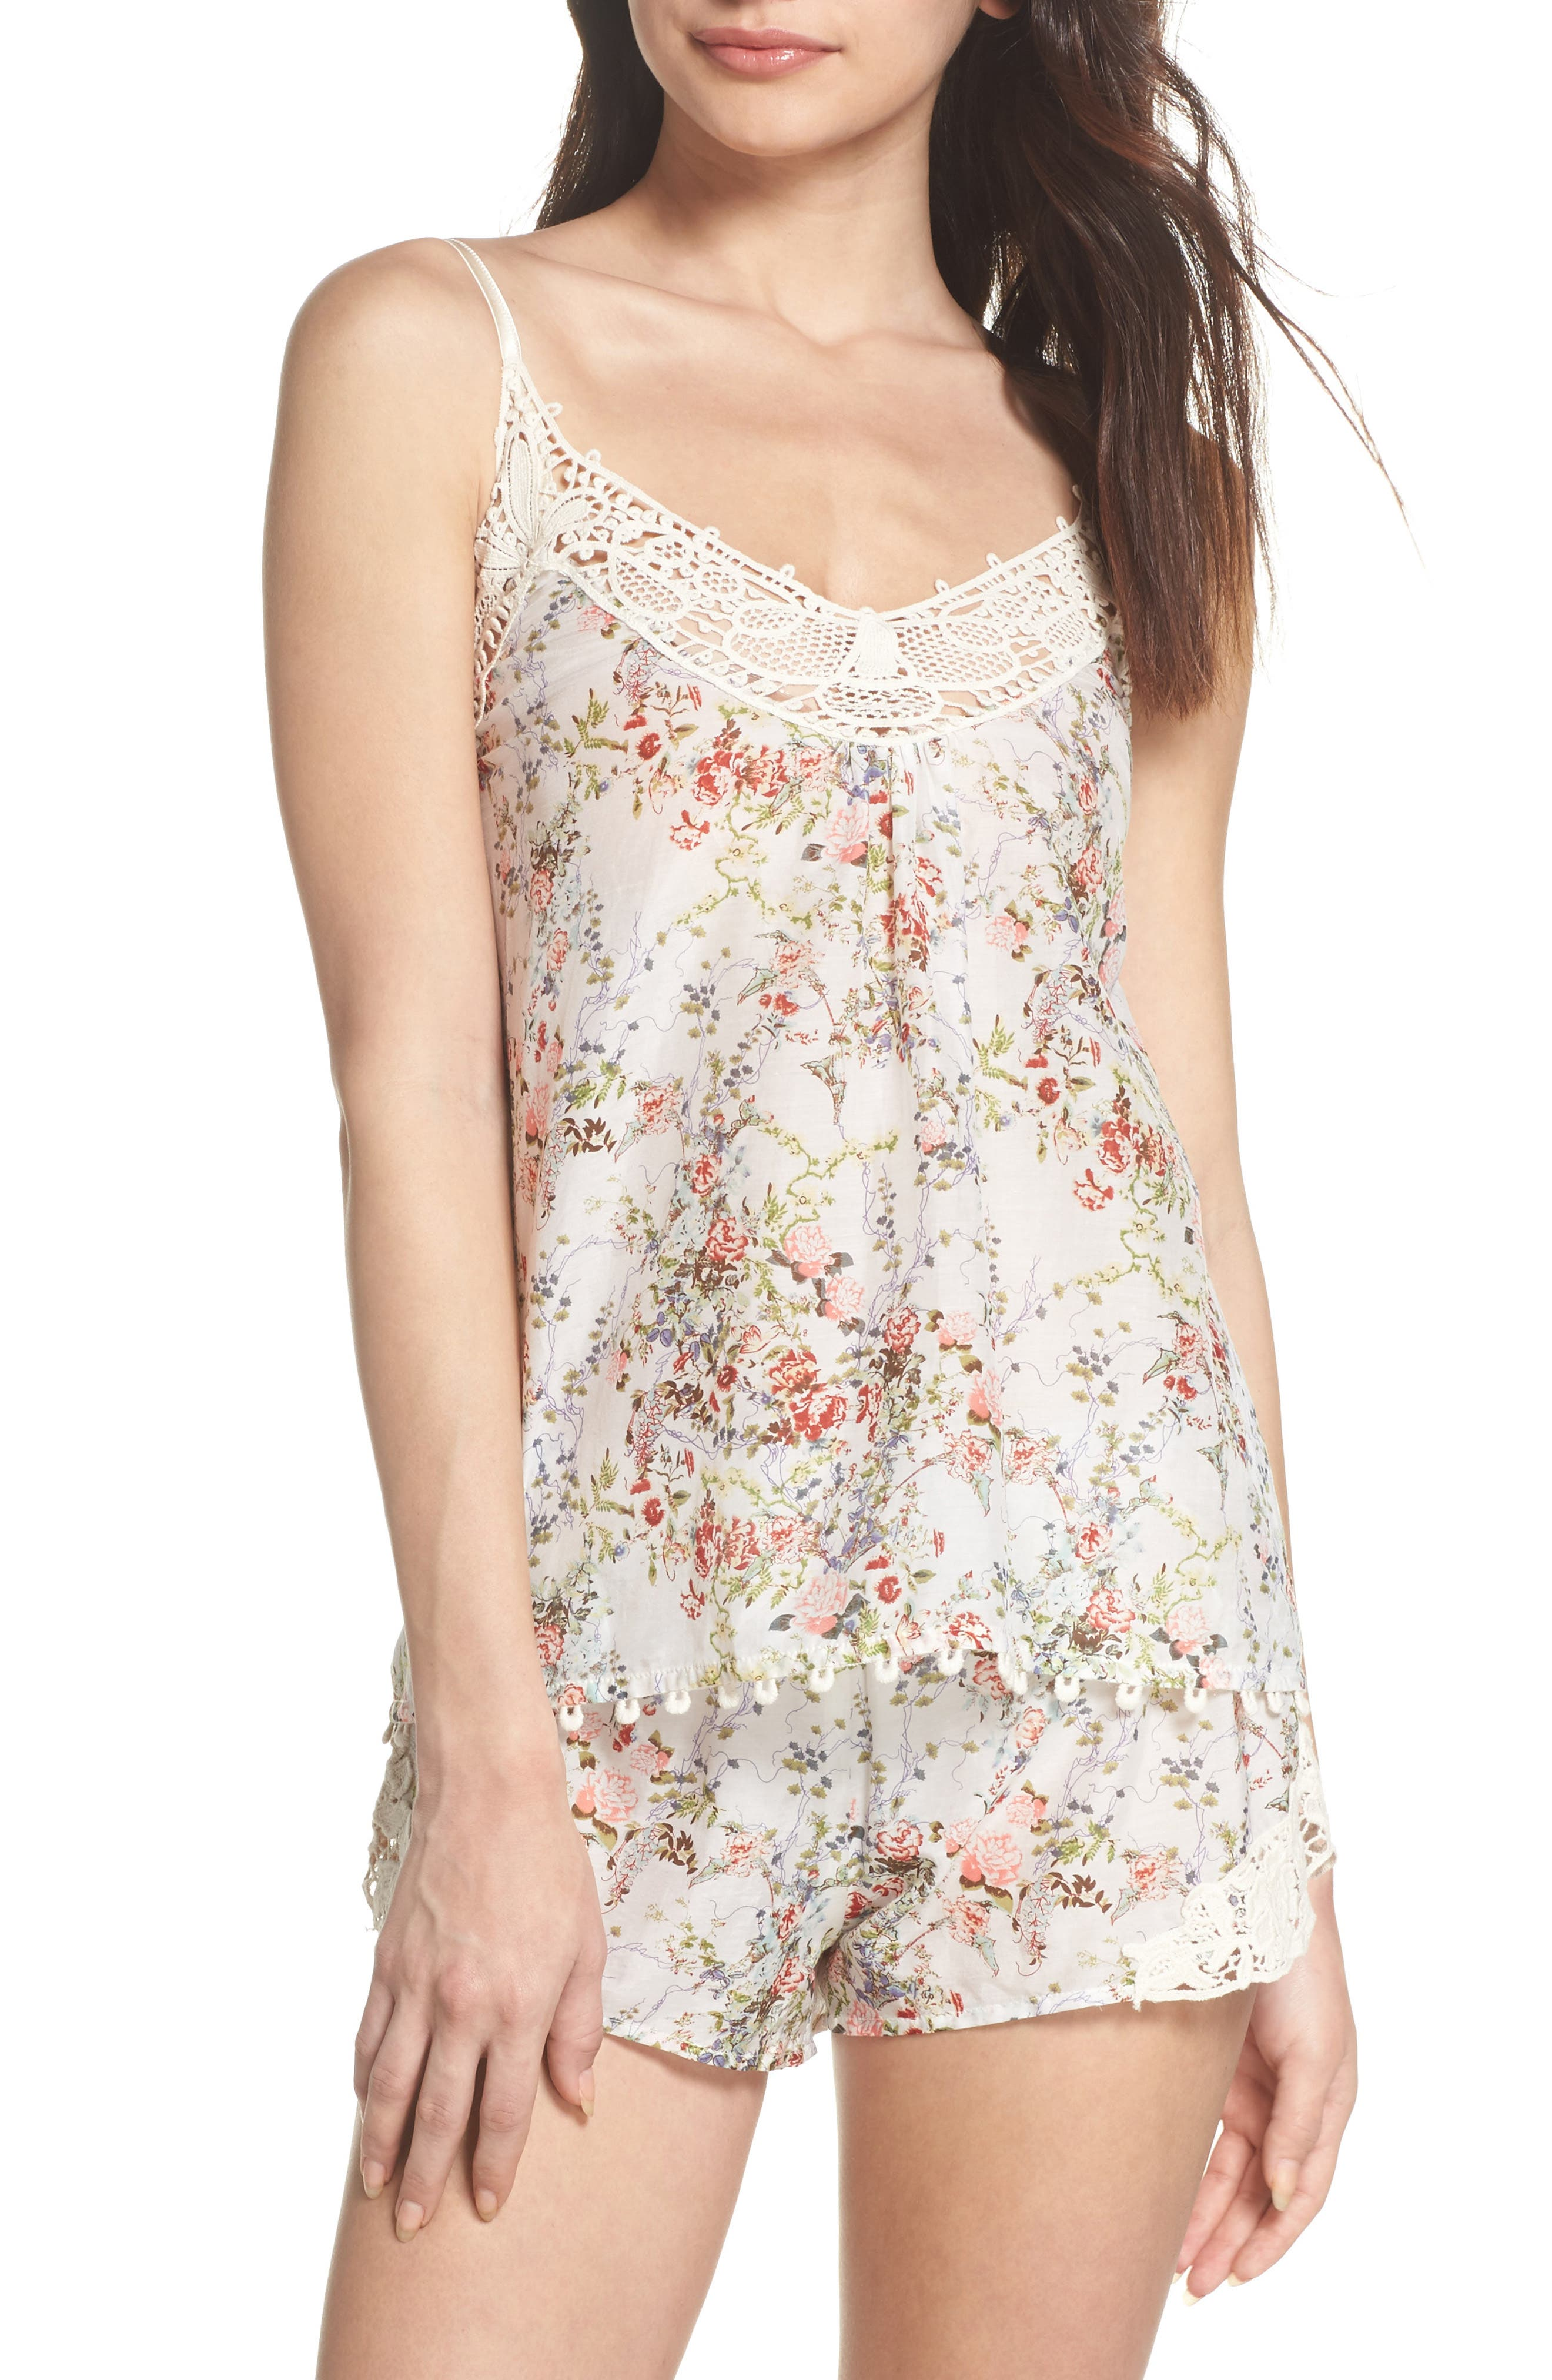 Yolly Camisole,                             Main thumbnail 1, color,                             IVORY FLORAL